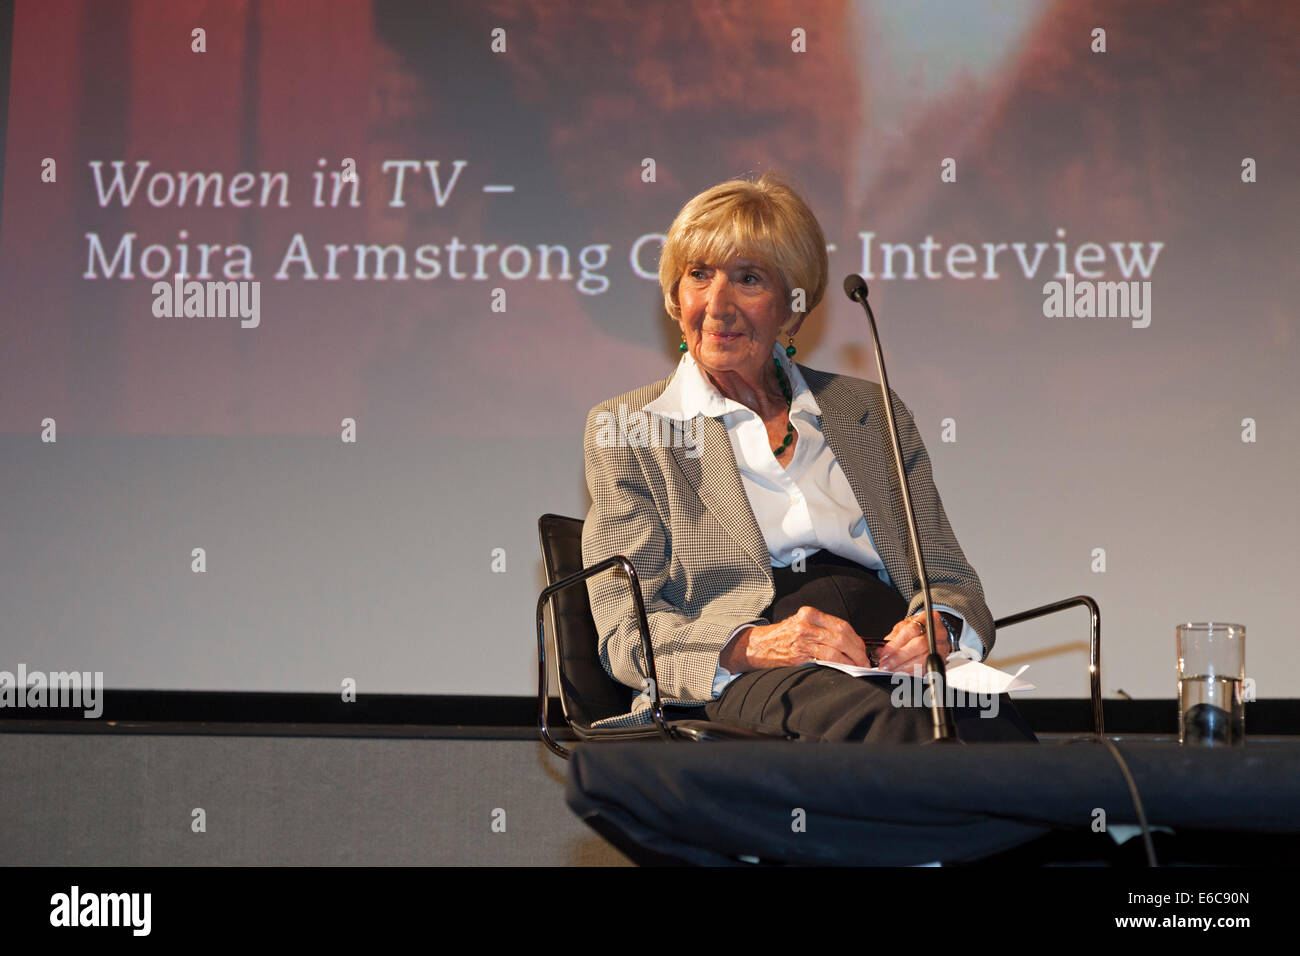 London, England, UK, 19 August 2014. Legendary BAFTA-Award winning multi-camera television drama director Moira - Stock Image